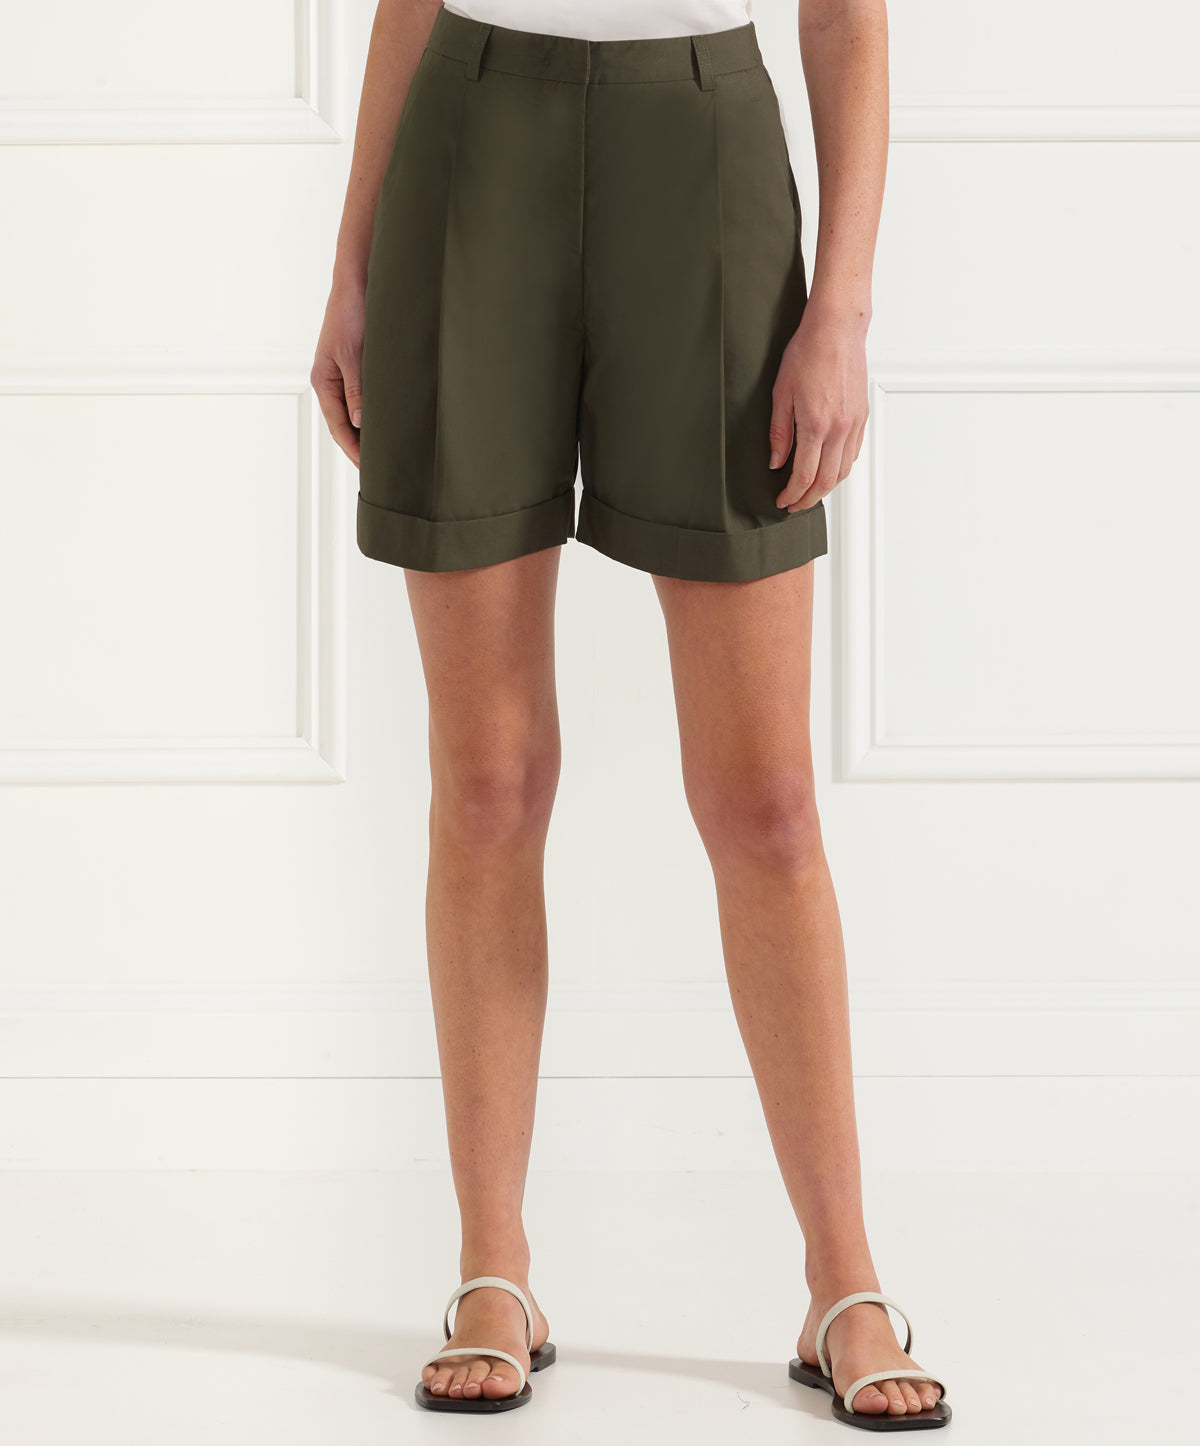 Janice - Tailor Pleated Shorts